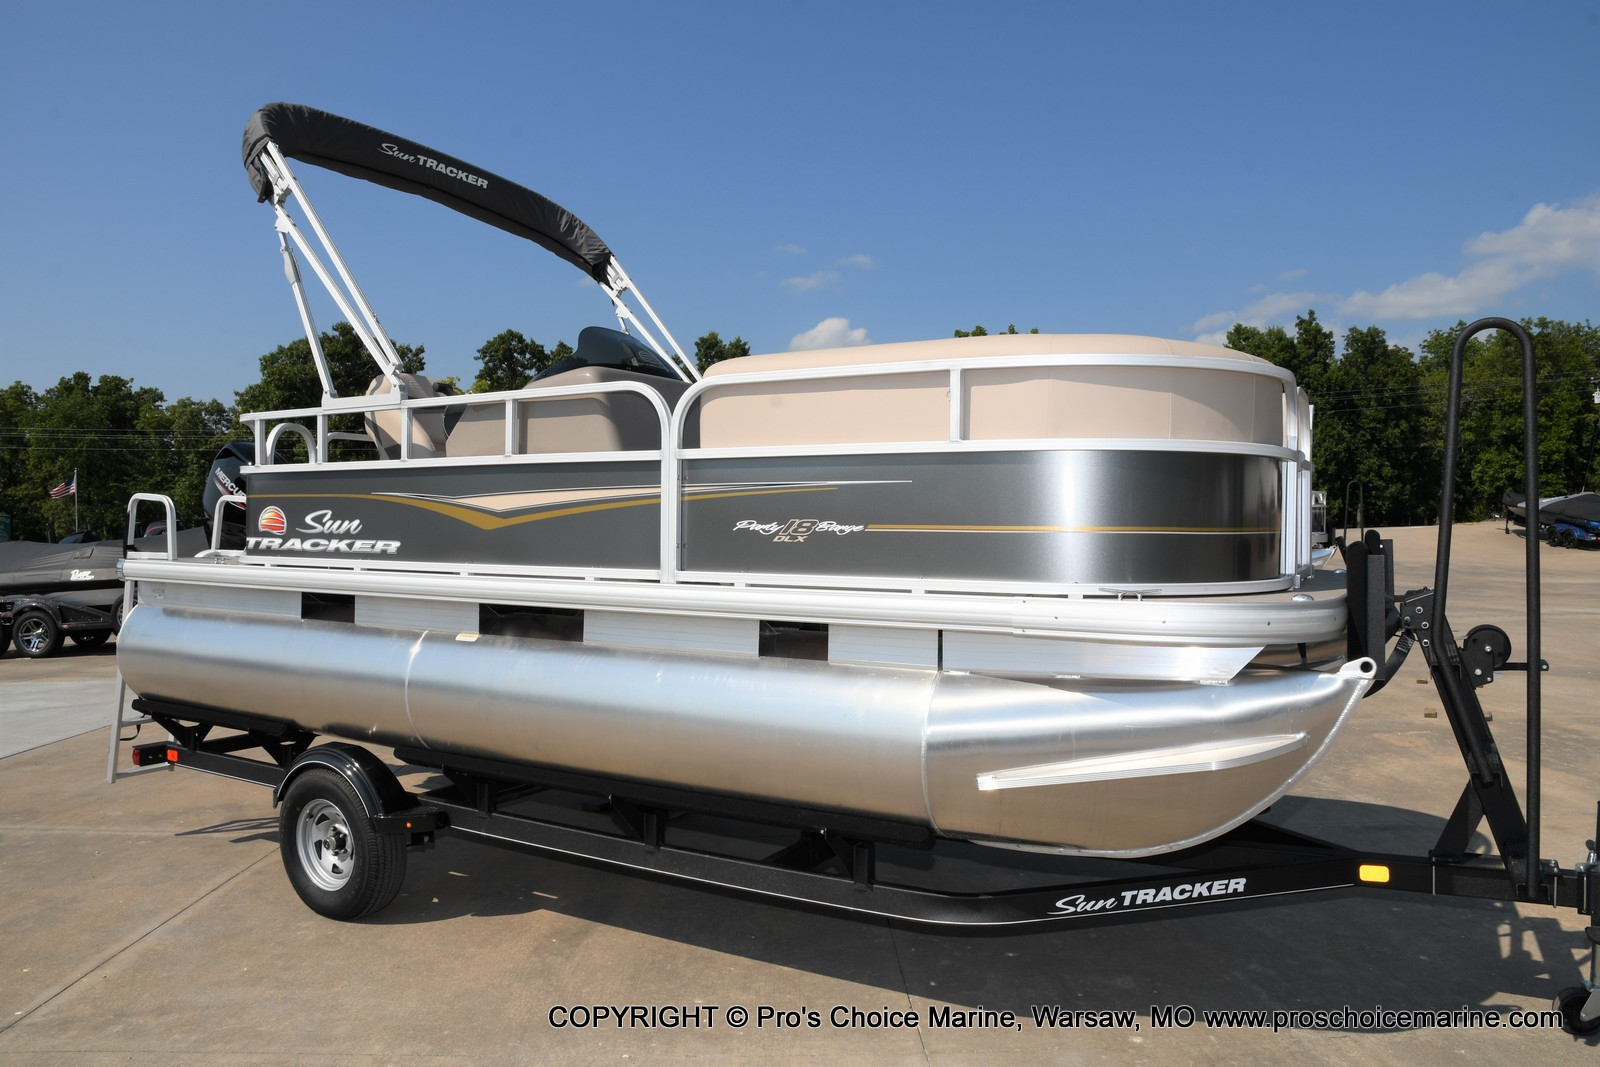 2021 Sun Tracker boat for sale, model of the boat is Party Barge 18 DLX & Image # 1 of 50